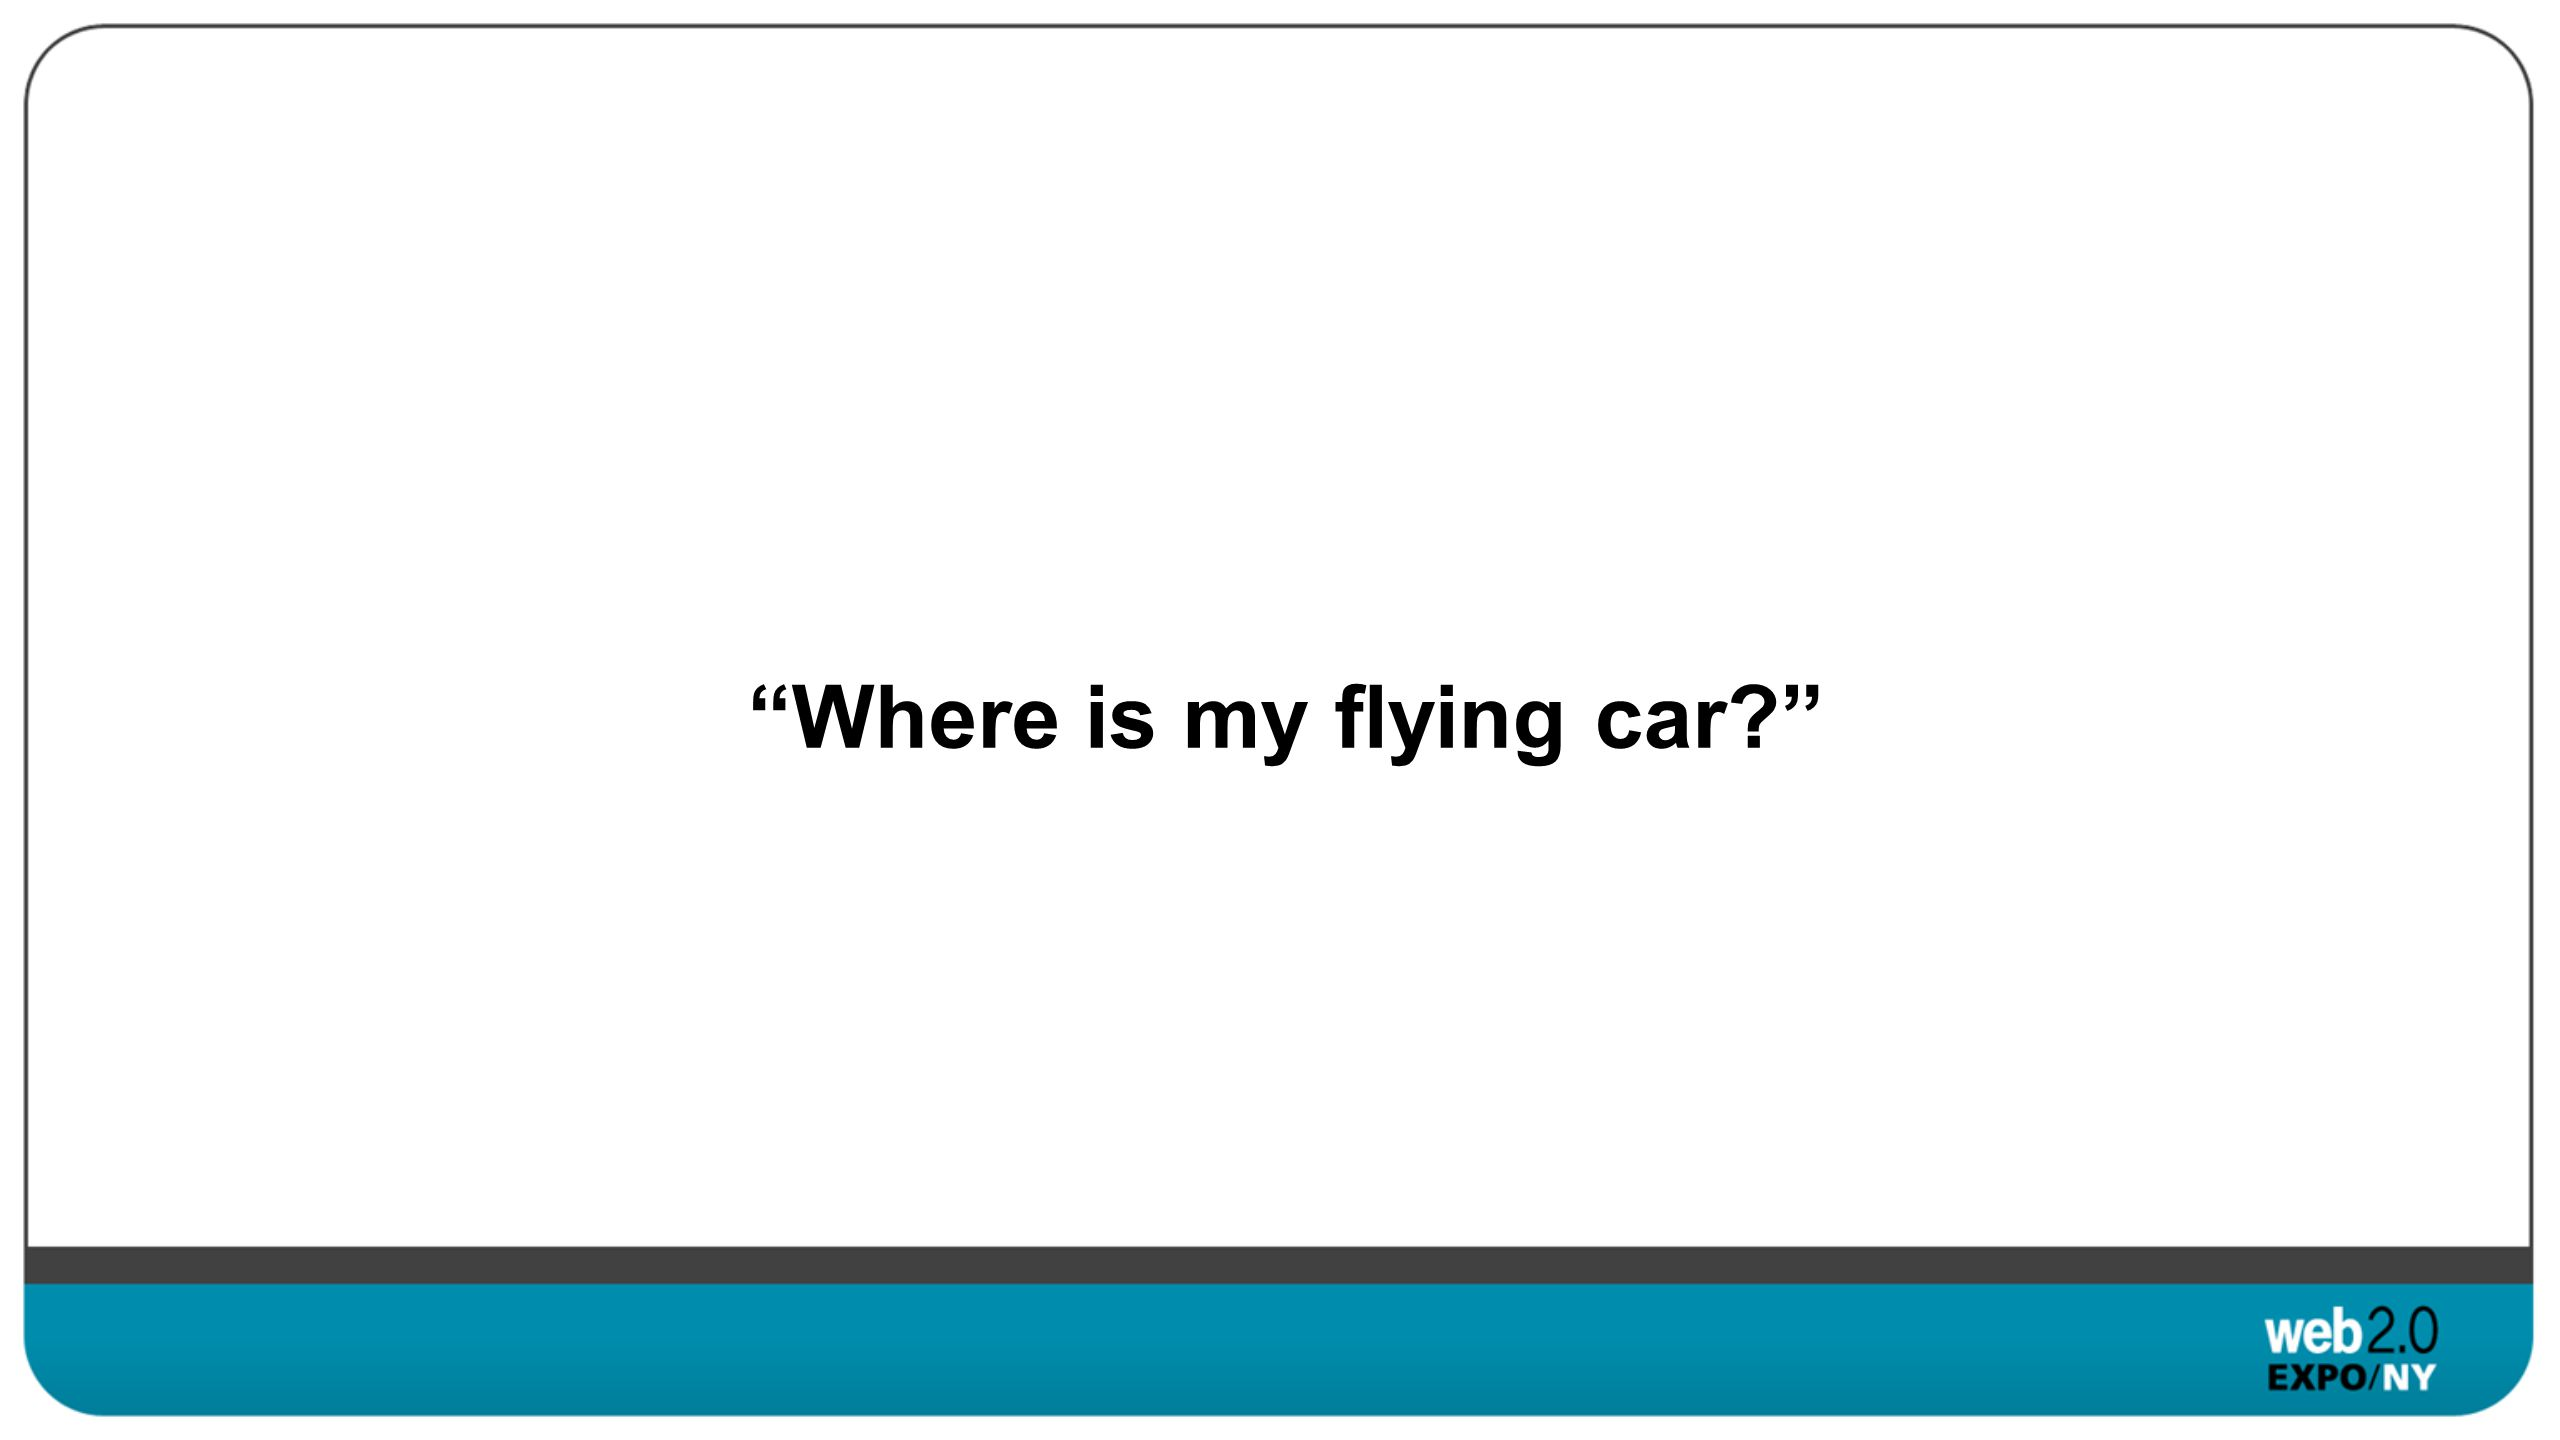 Where is my flying car?